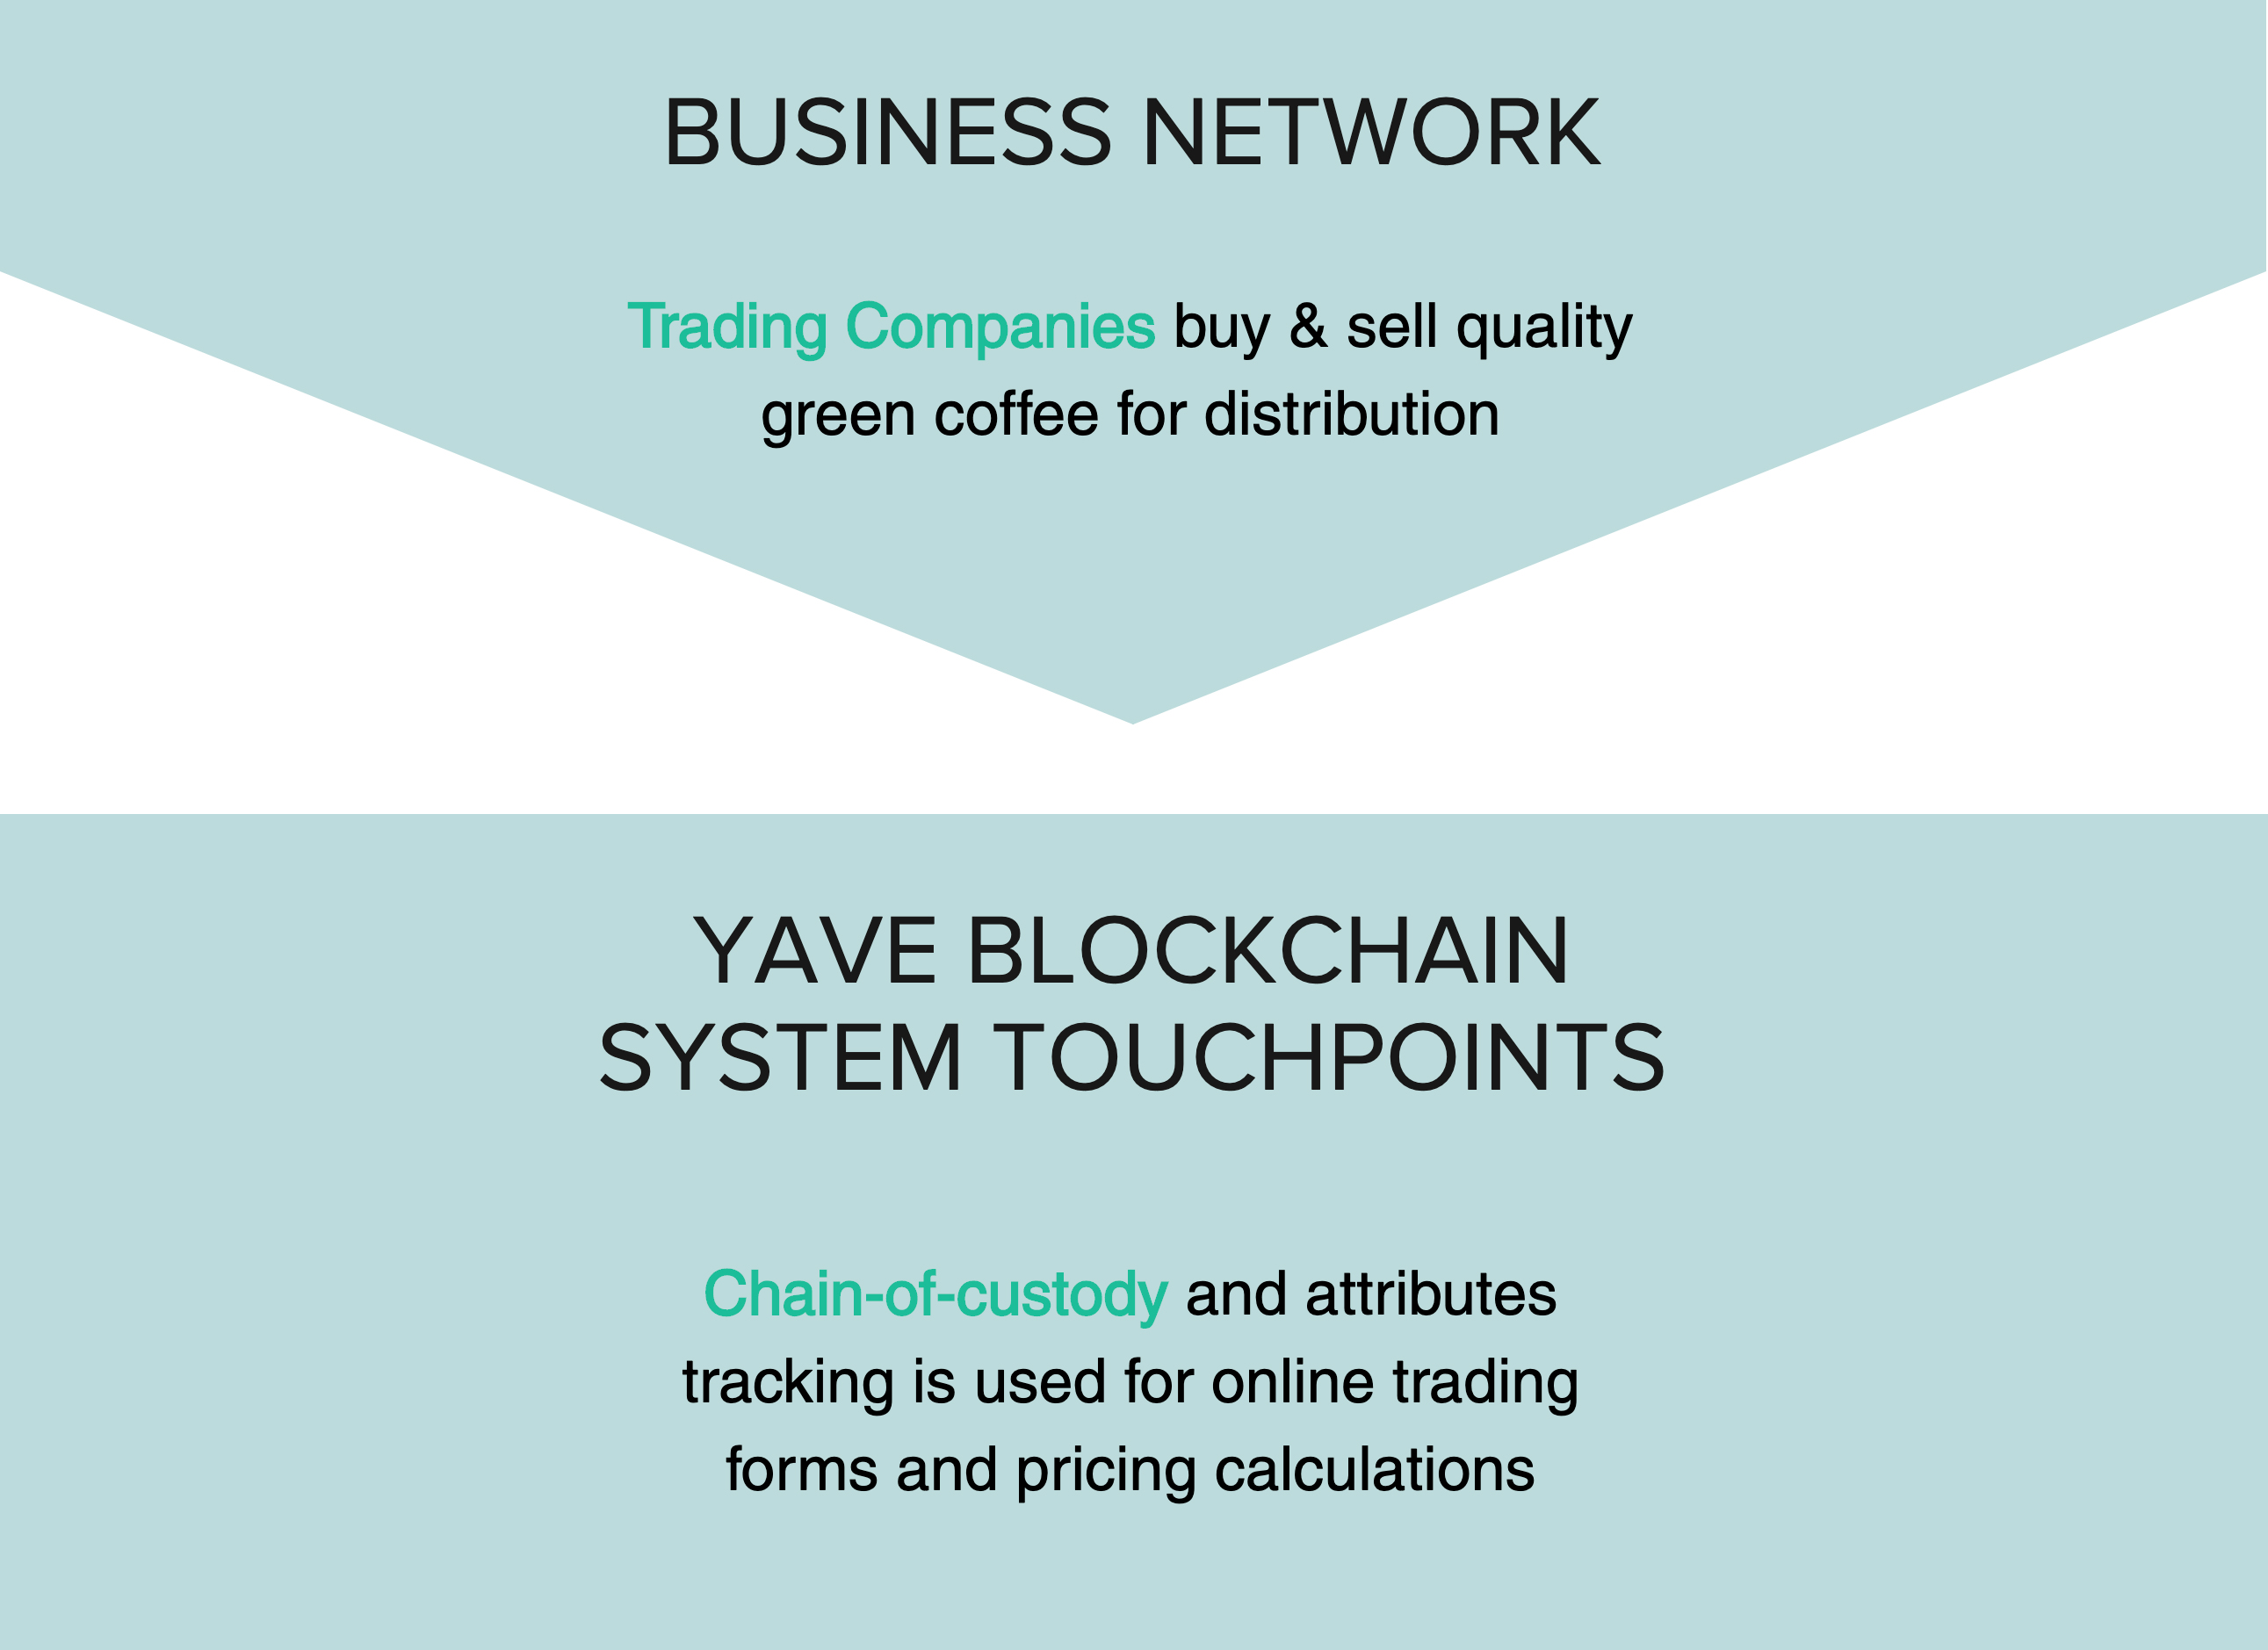 Business Network: Trading Companies buy and sell quality green coffee for distribution > Yave Blockchain System Touchpoints: Chain-of-custody and attributes tracking is used for online trading forms and pricing calculations